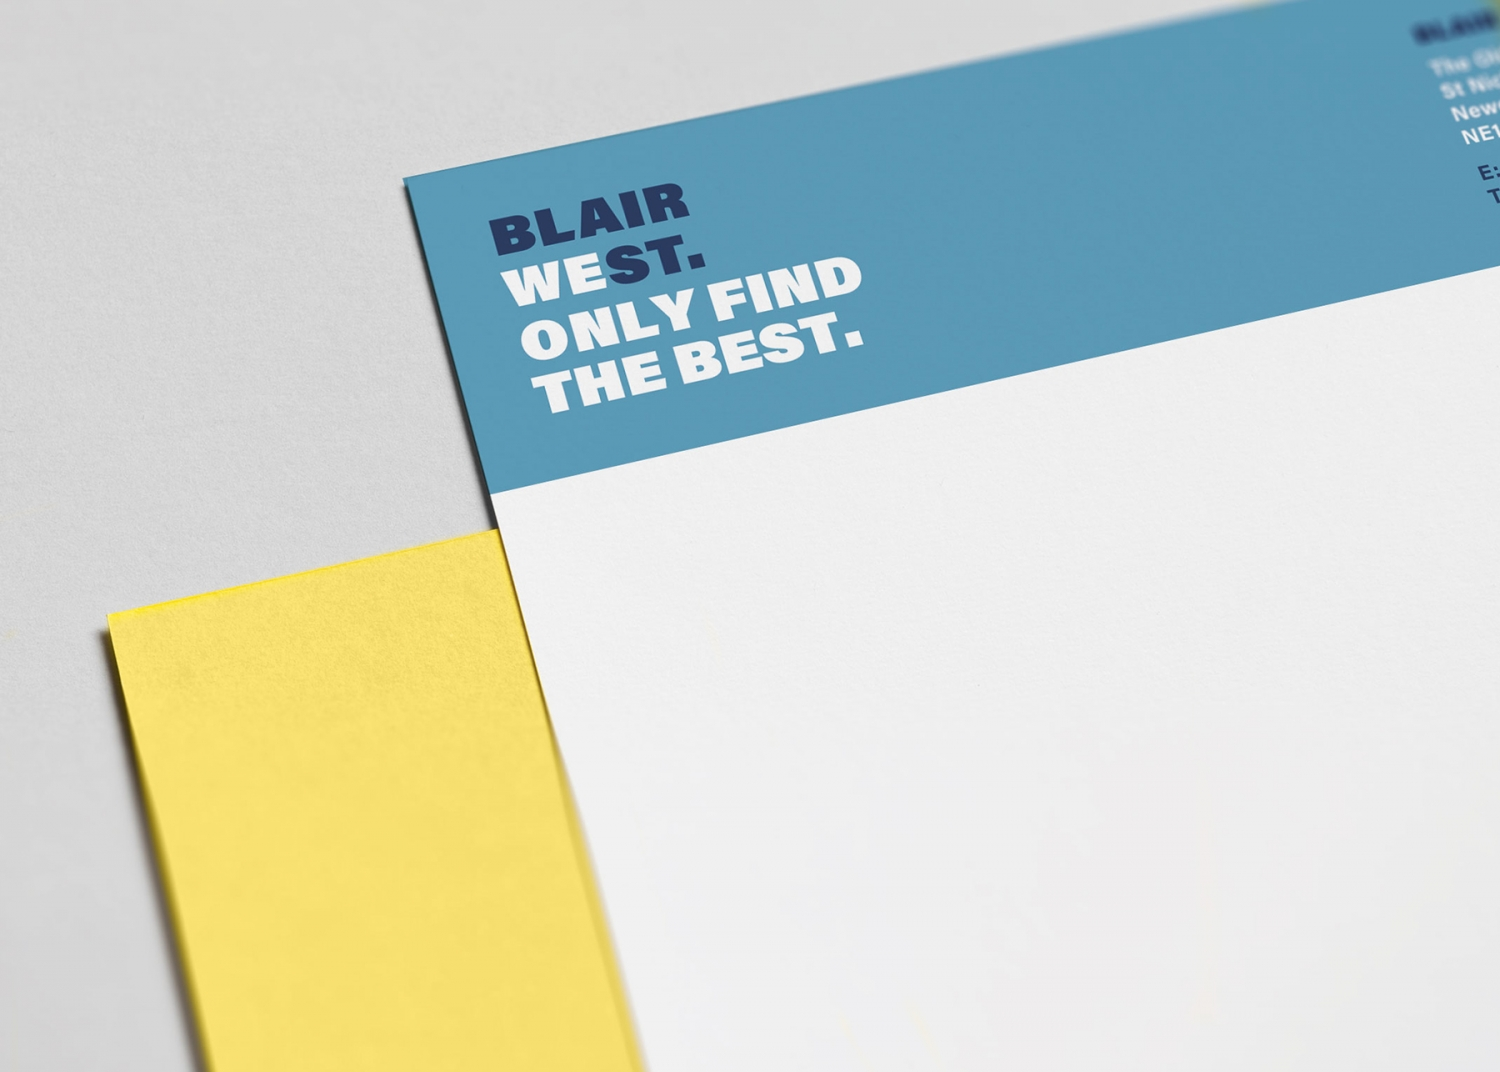 Blair West brand identity, logo and stationery for recruitment agency by Altogether Creative.